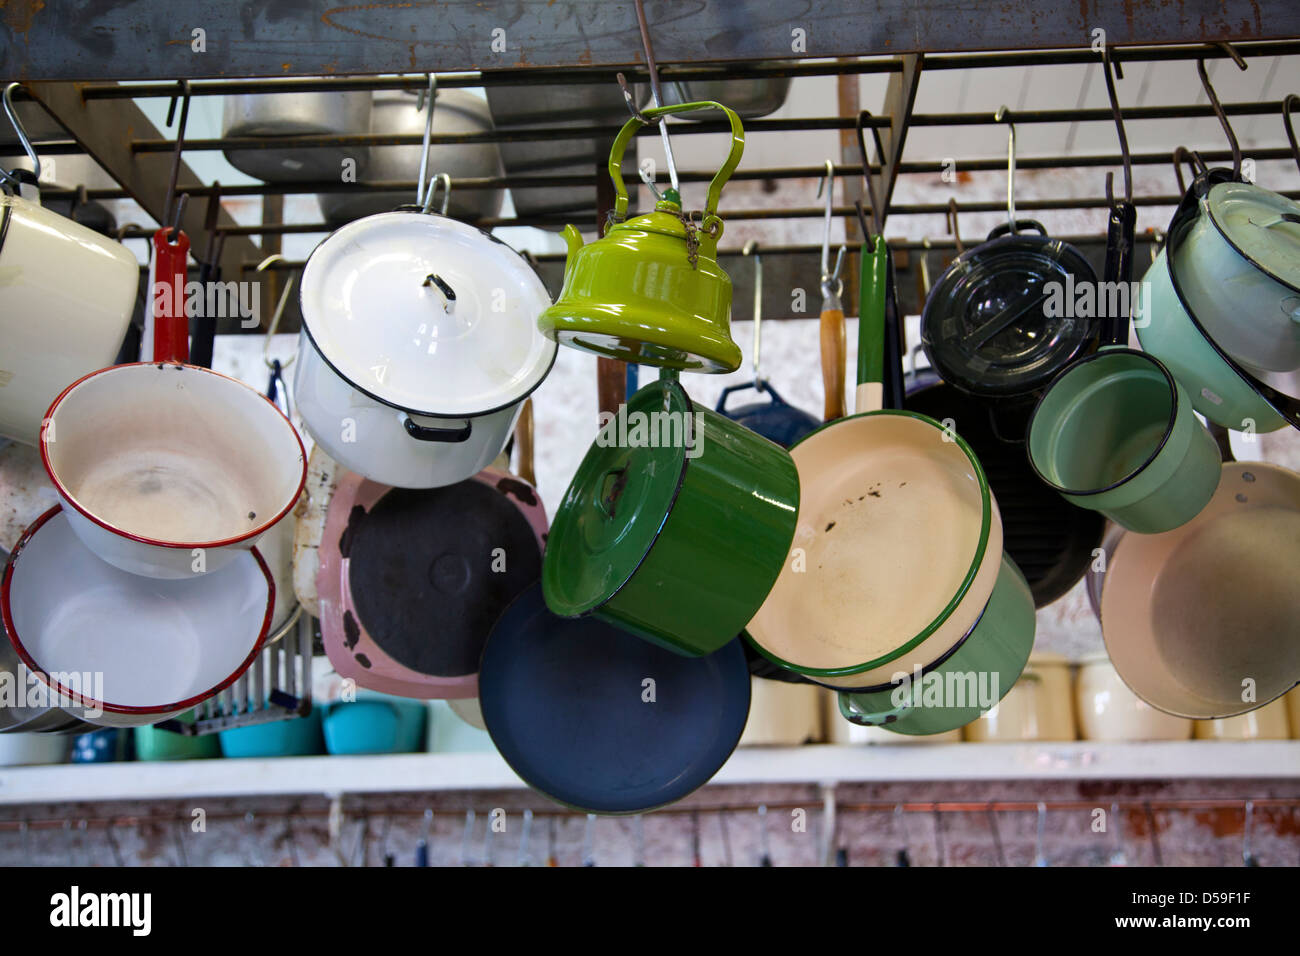 Kitchenalia Rental Shop at Old Biscuit Mill in Woodstock Cape Town - South Africa - Stock Image